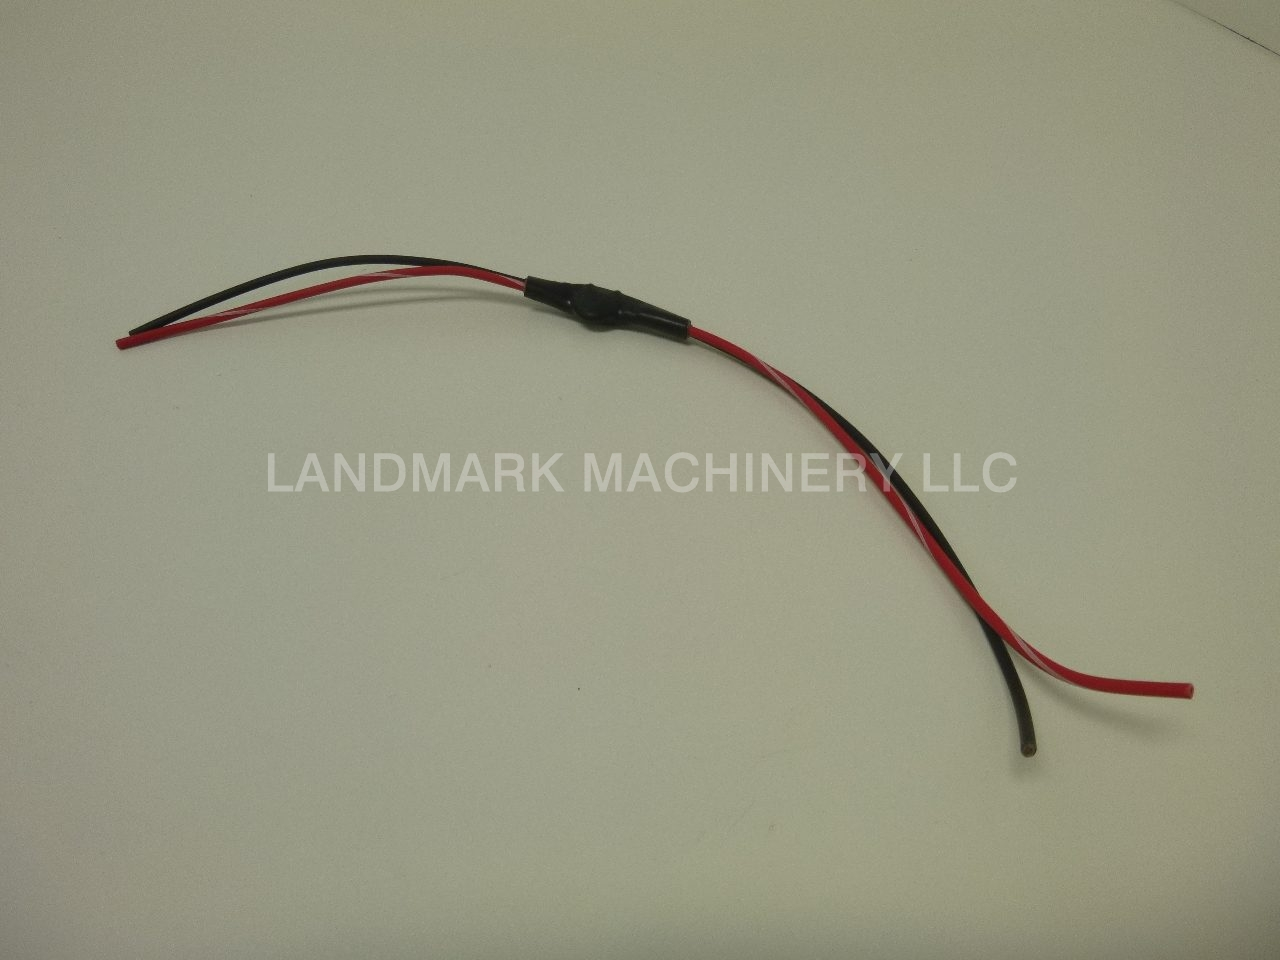 Diode (In-Line)